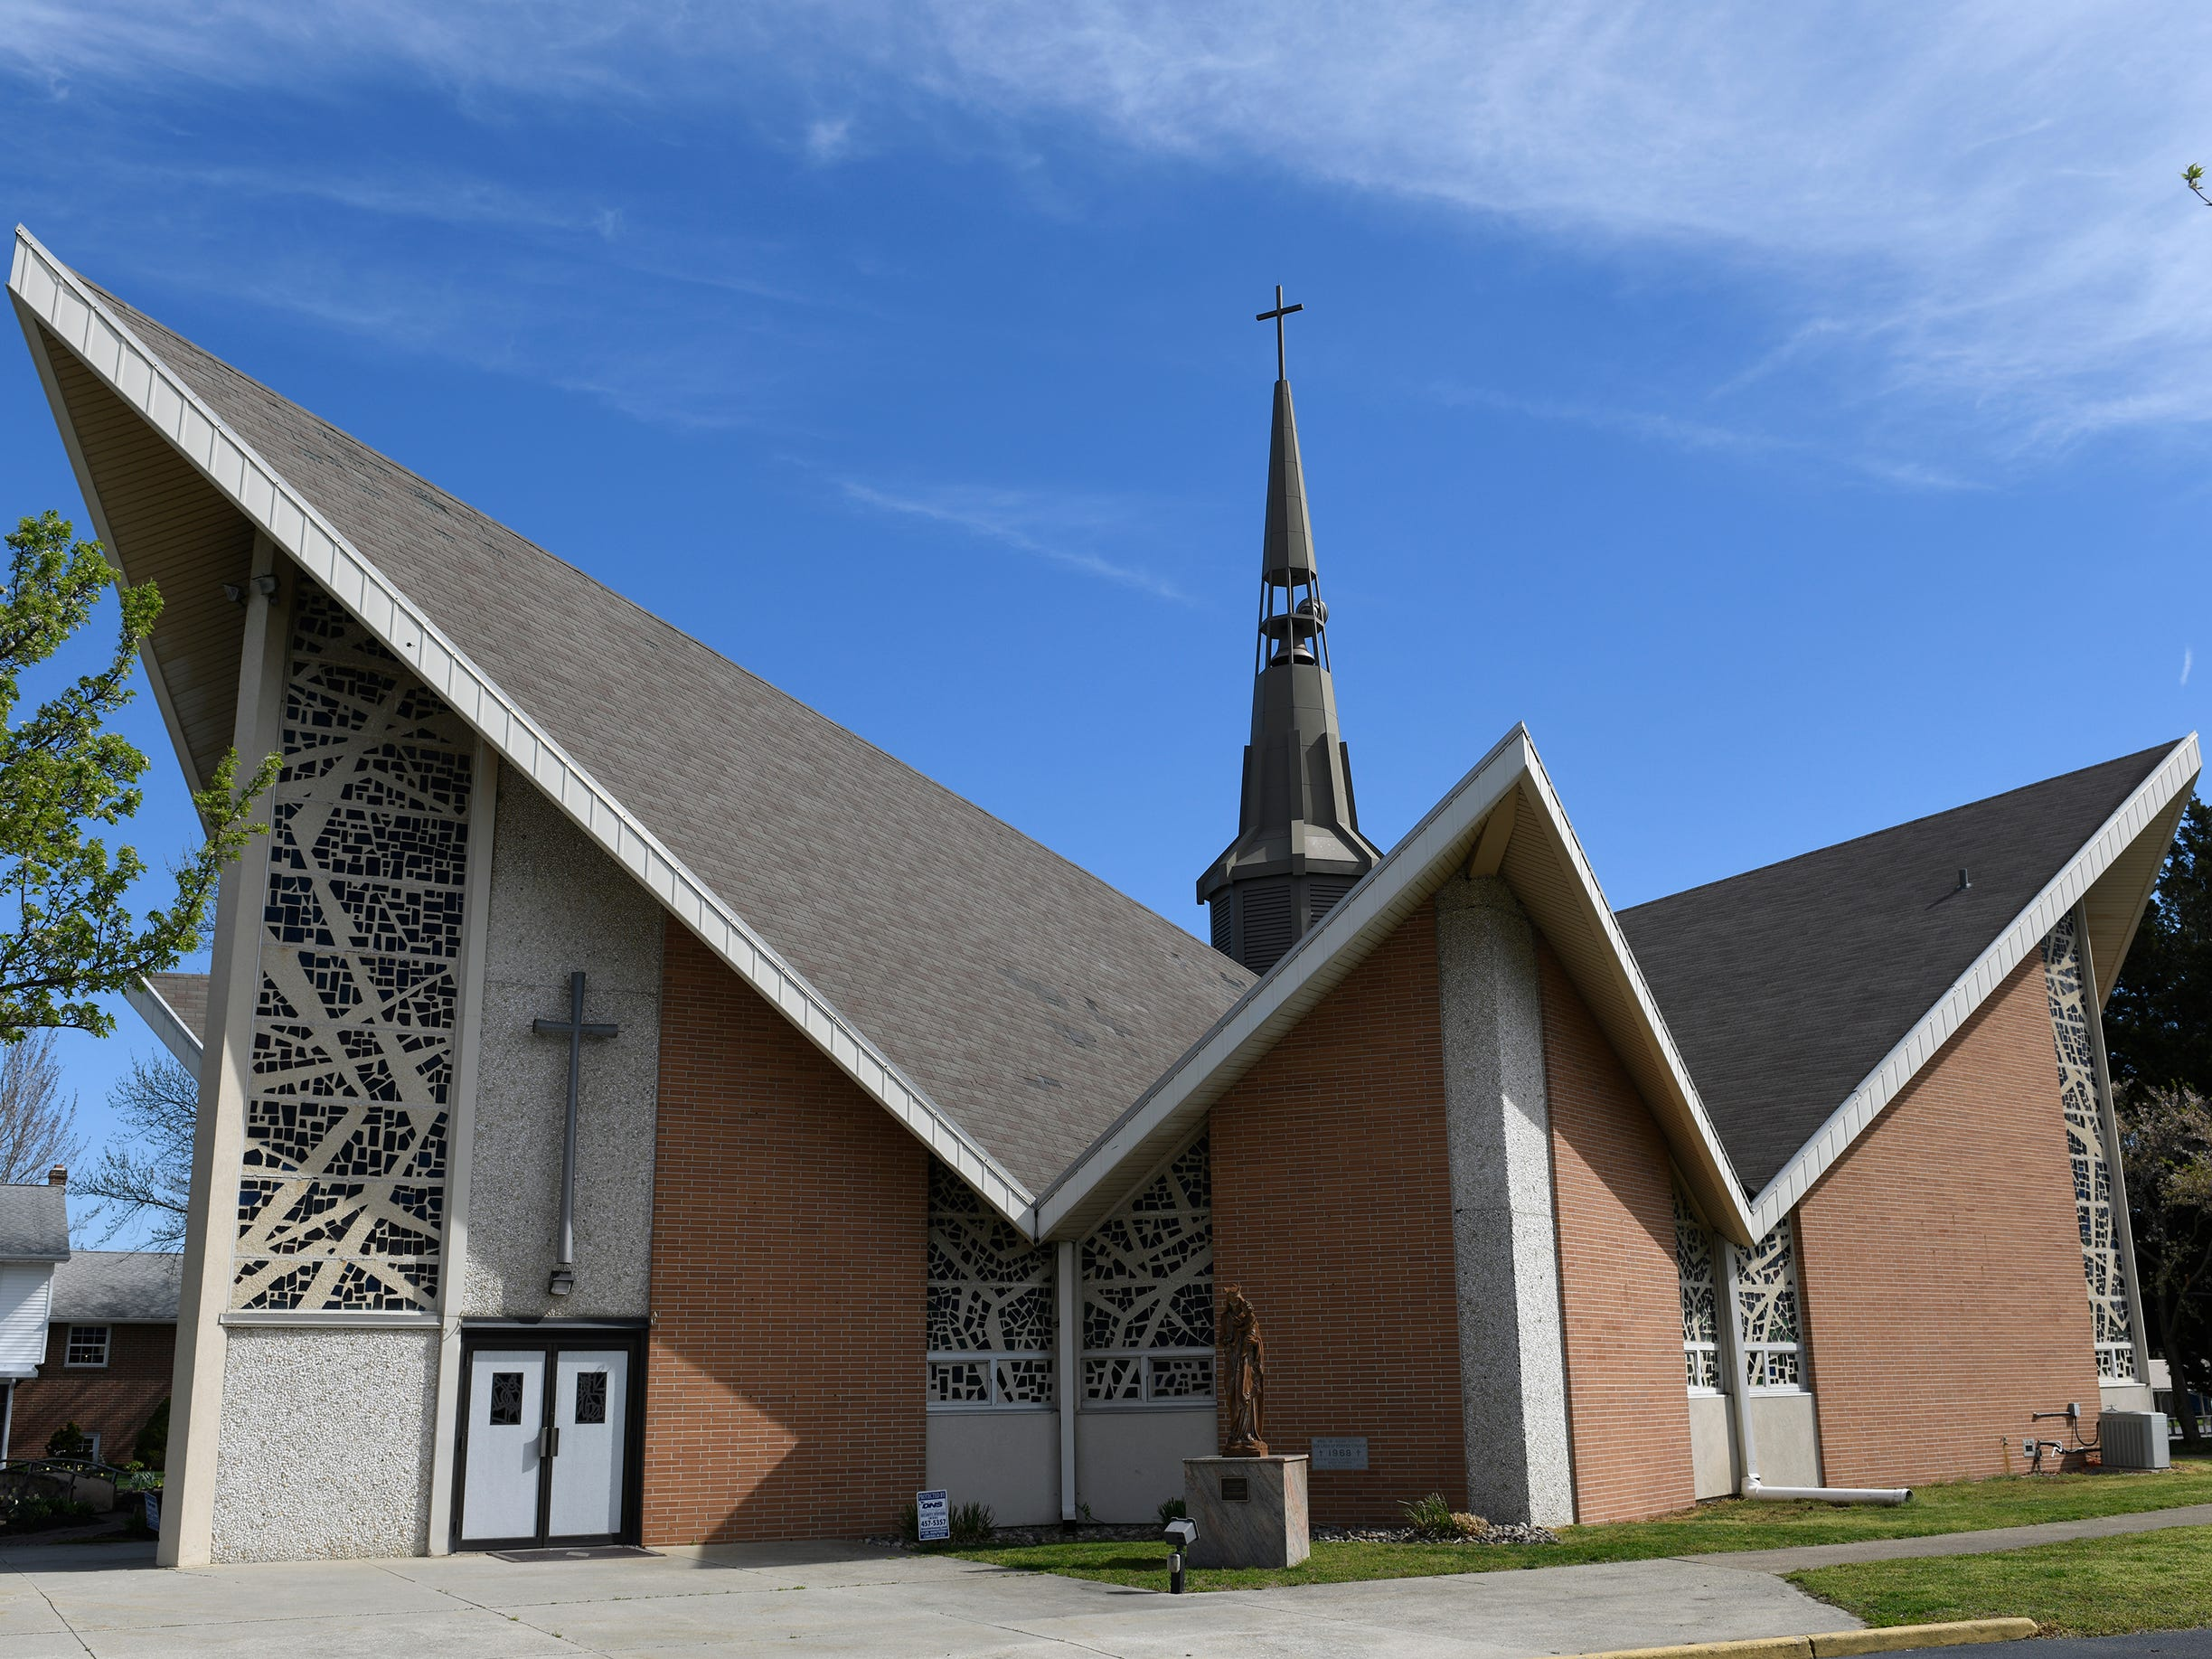 PHOTOS: Take a look inside Our Lady of Pompeii Roman Catholic Church in Vineland